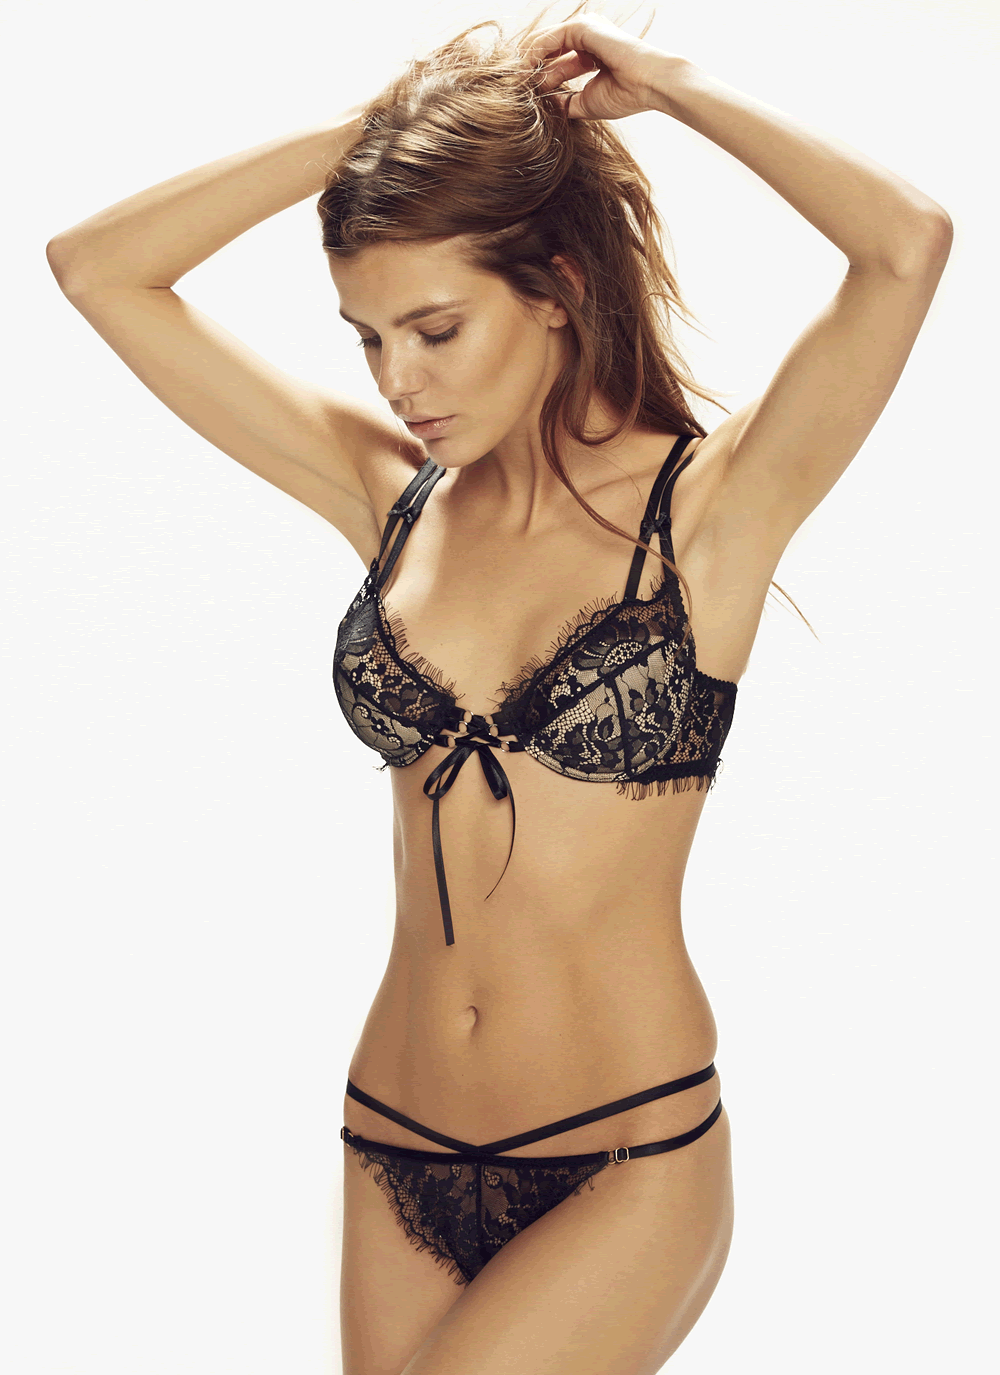 Forever Young Pushup Bra & Panty Set